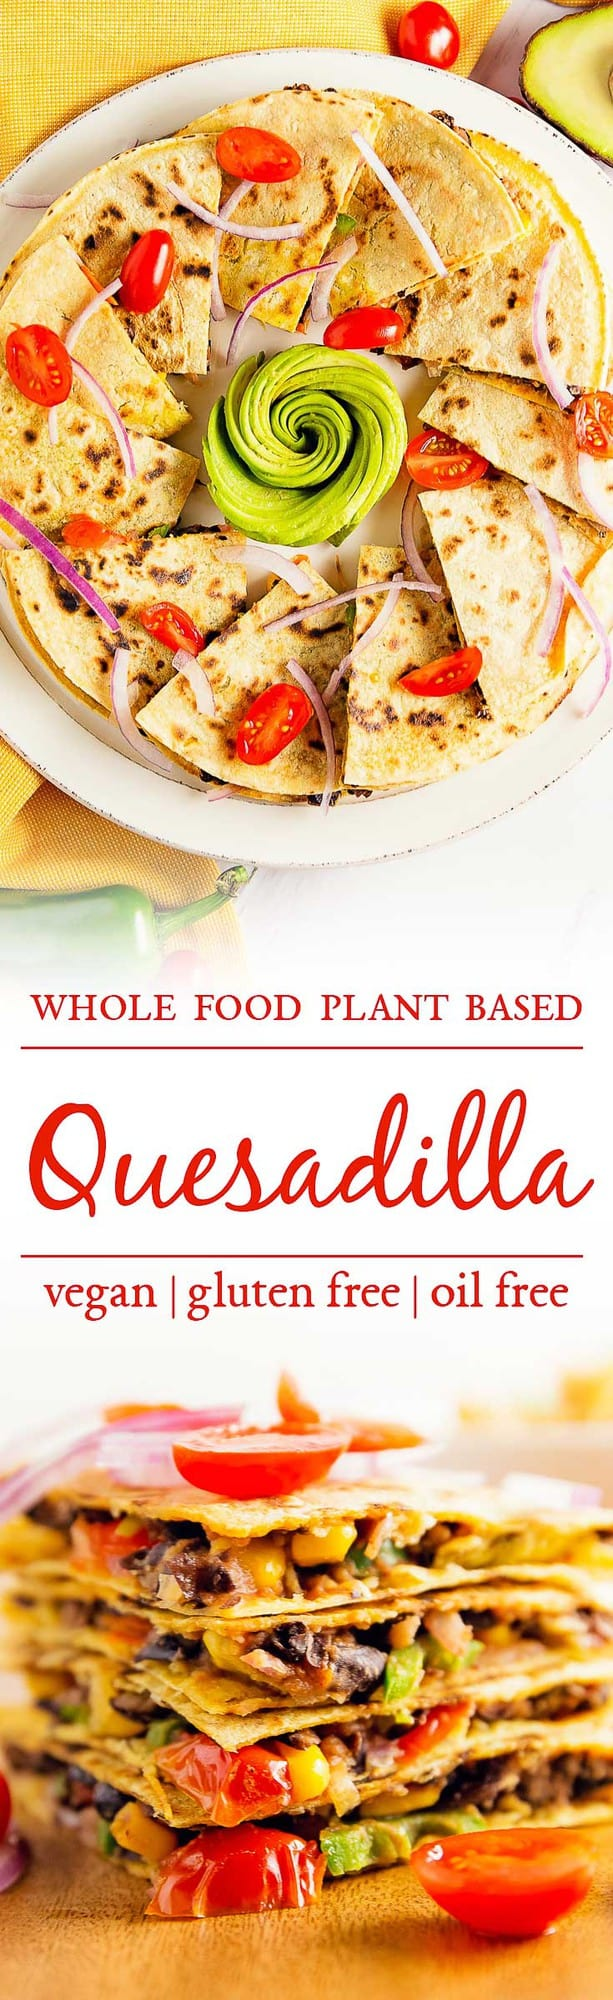 quesadilla, spicy black beans, dairy free quesadilla, whole food plant based quesadilla, recipe, quesadilla recipe, dairy free quesadilla recipe, vegan, vegan recipe, whole food plant based recipe, whole food plant based, vegetarian, vegetarian recipe, gluten free, gluten free recipe, vegan dinner, vegan lunch, vegan meals, vegetarian dinner, vegetarian lunch, vegetarian meal, whole food plant based dinner, whole food plant based lunch, whole food plant based meal, gluten free dinner, gluten free lunch, gluten free meal, healthy, oil free, no oil, red onions, corn, black beans, green onions, tomatoes, jalapeño, quick dinner, fast dinner, entertaining, wfpb, dairy free, no dairy, traditional, Mexican, Southwestern, classic, delicious, the best, winter, fall, spring, summer, fast, easy, quick, simple, 30 minutes,